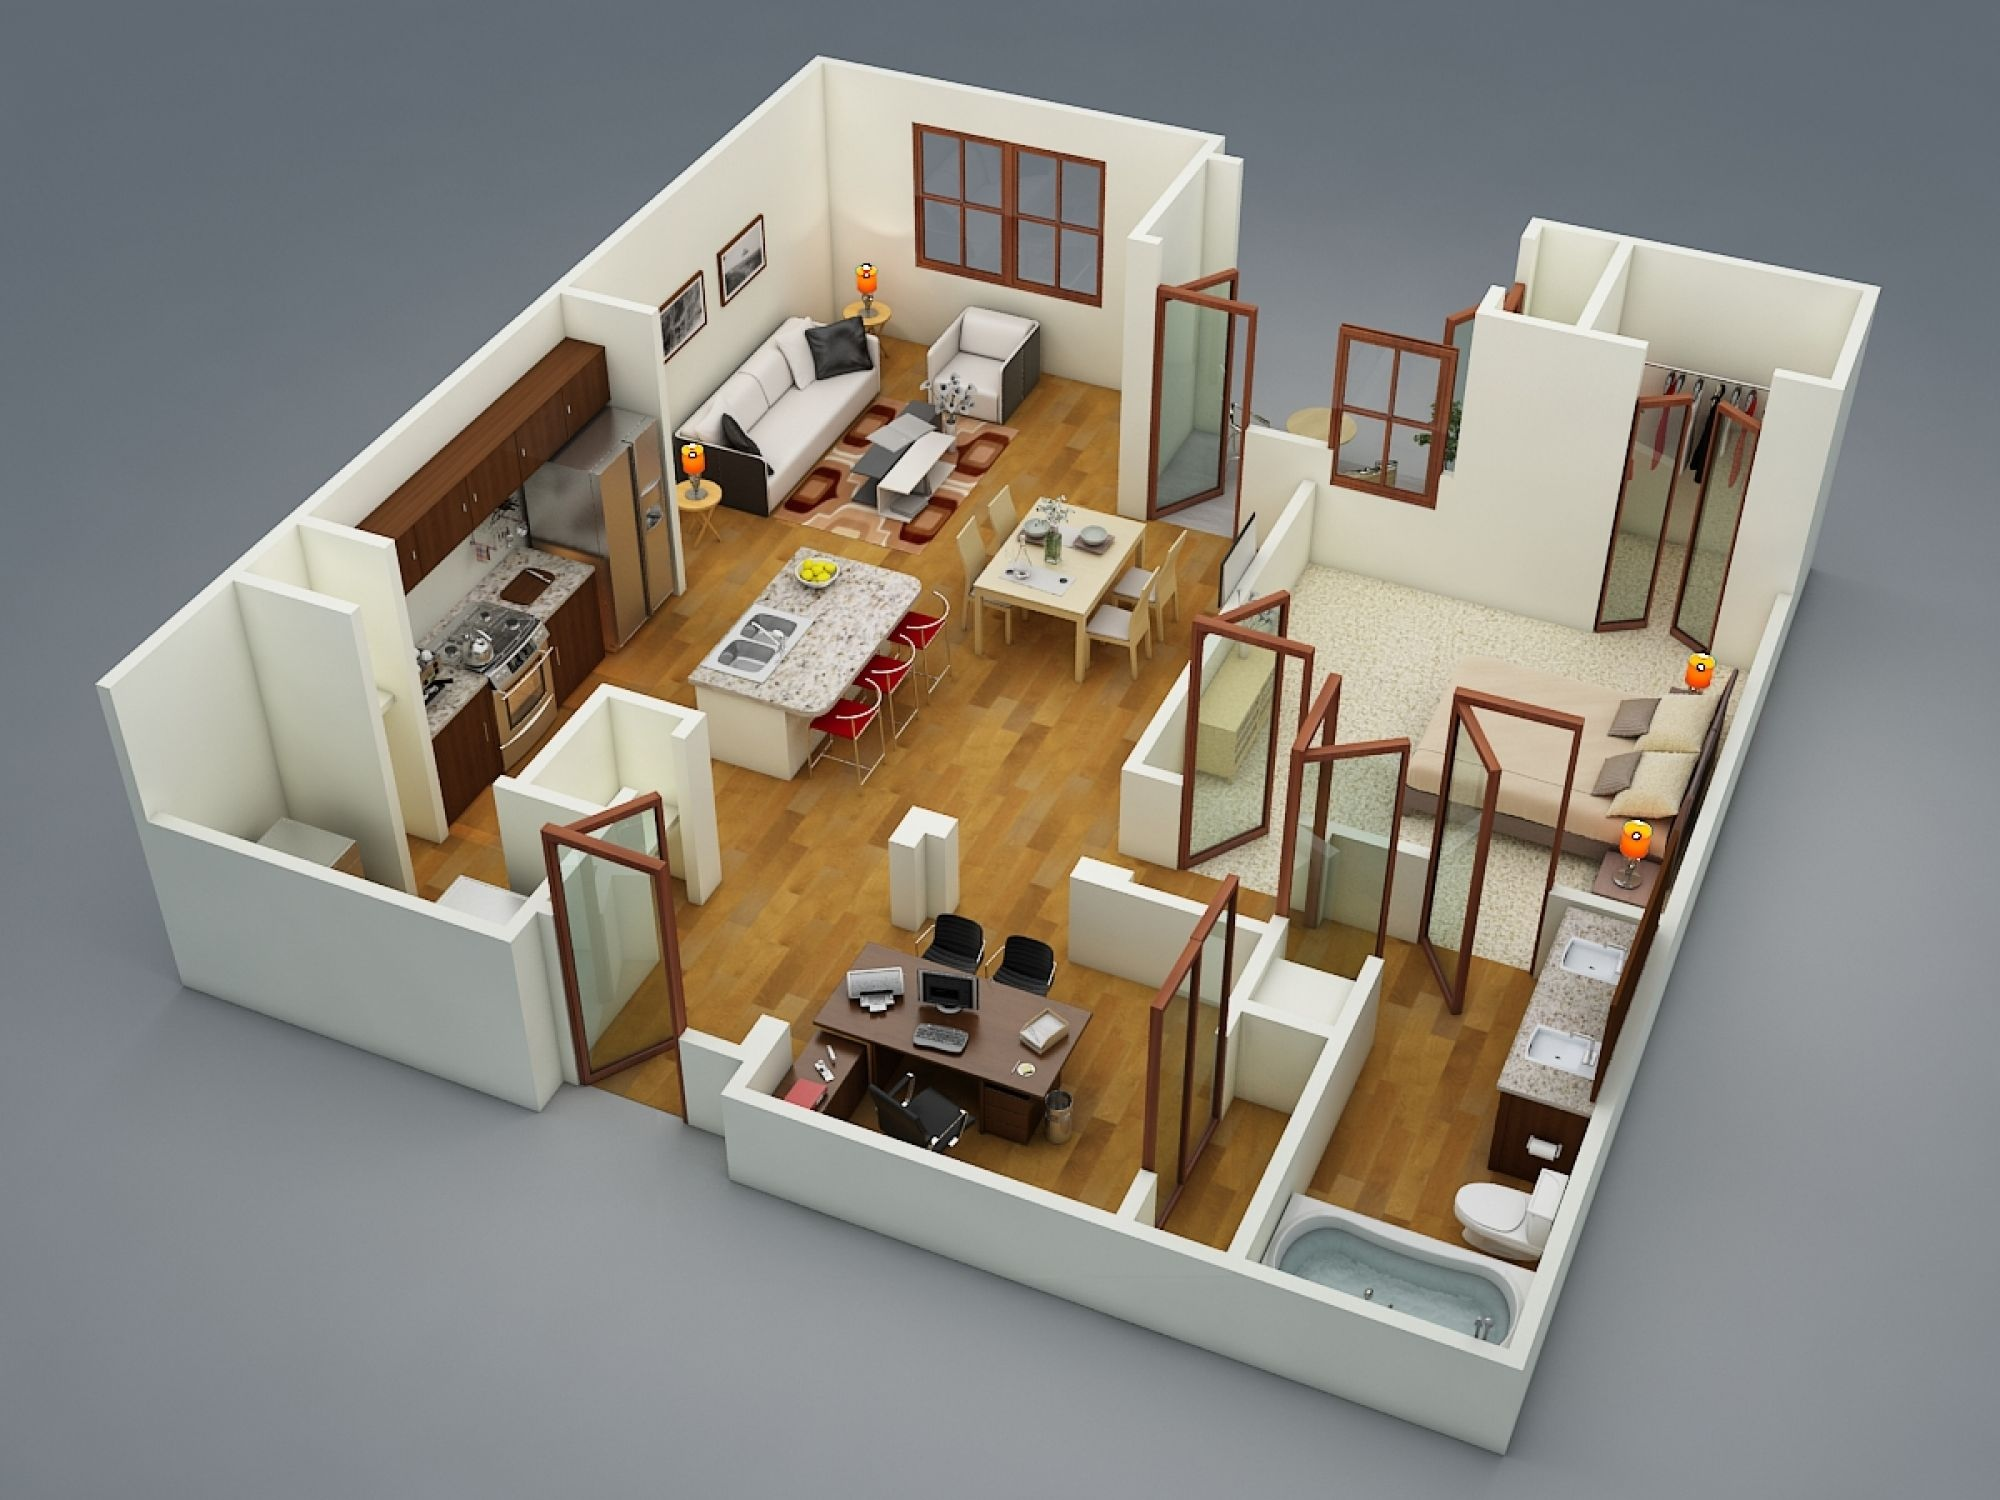 1 Bedroom Apartment House Plans: apartment house plans